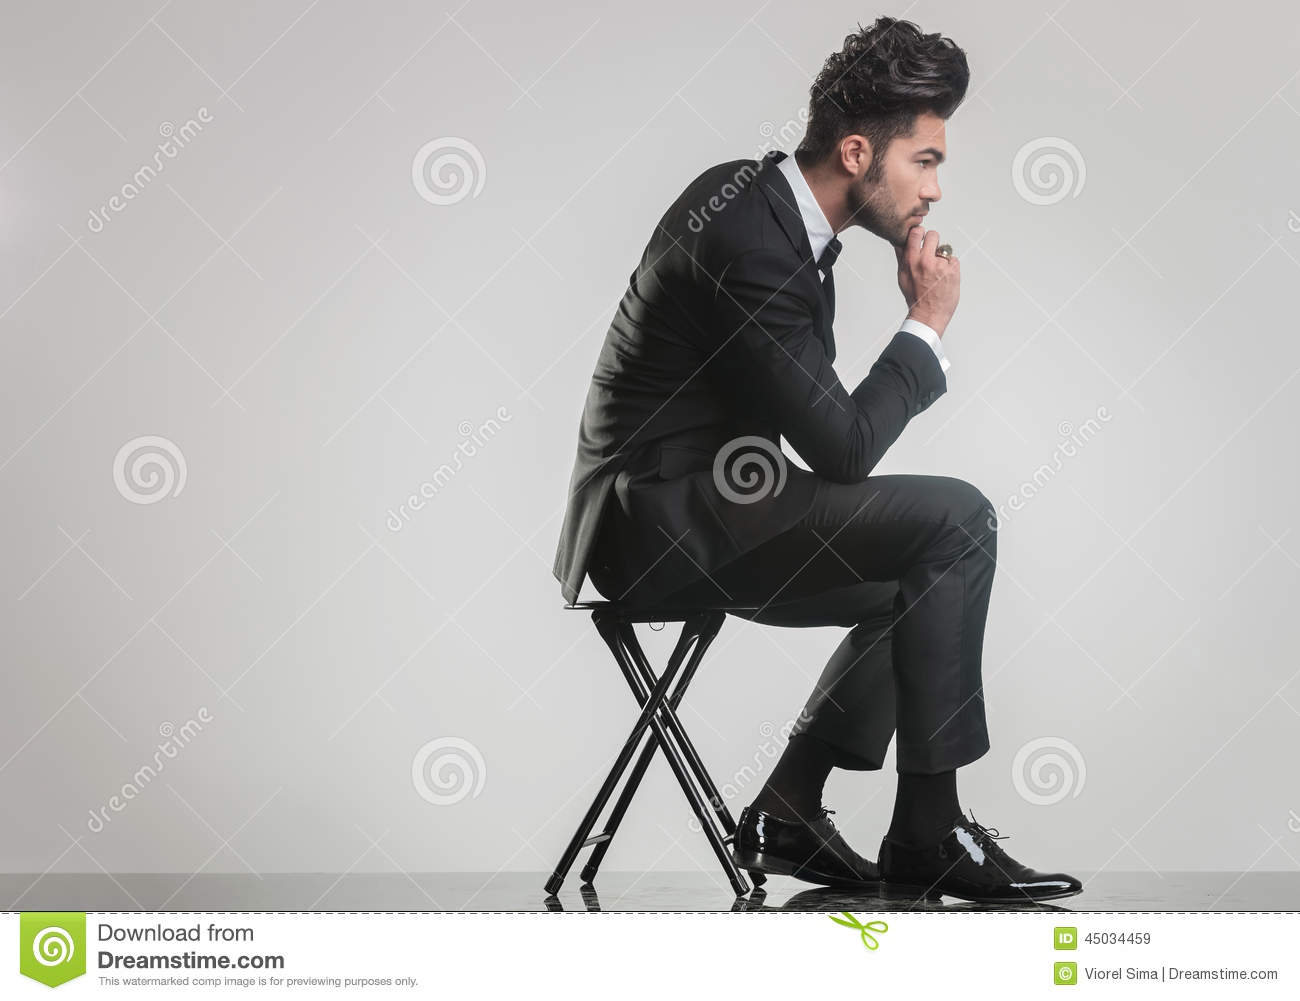 Man On Stool Royalty Free Stock Photo Cartoondealer Com